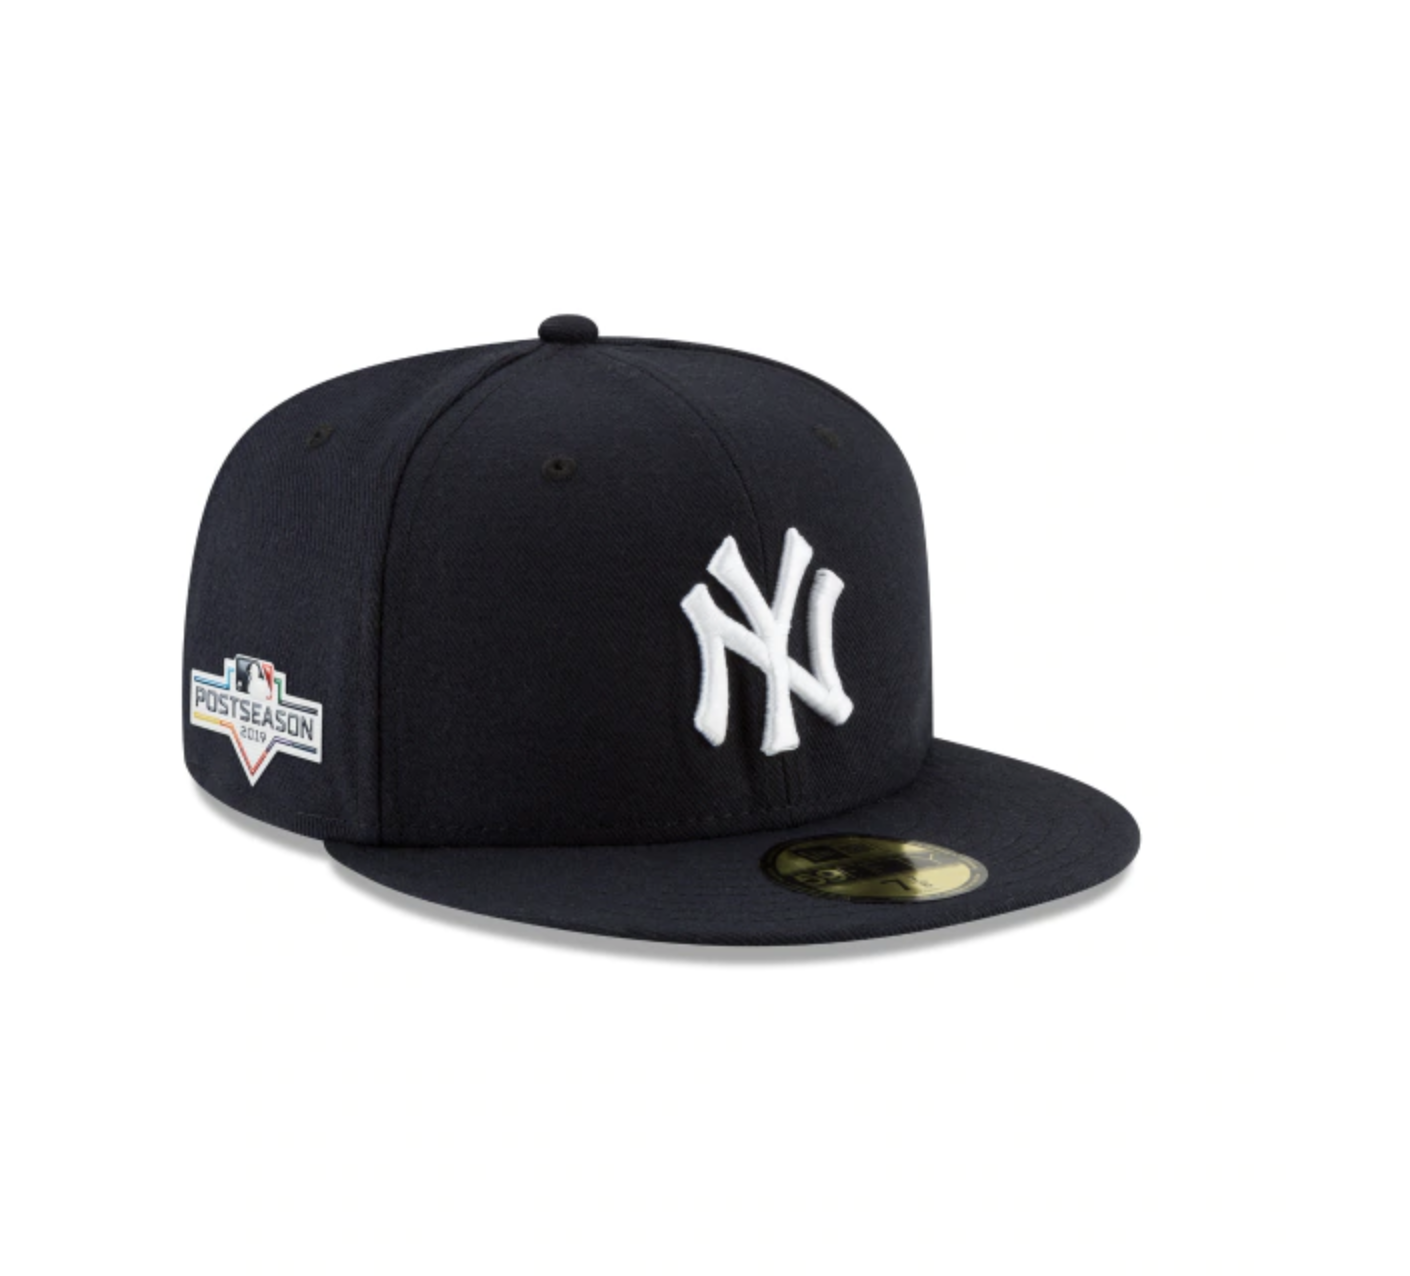 New York Yankees Postseason Side Patch 59fifty Fitted New York Yankees Postseason Yankees